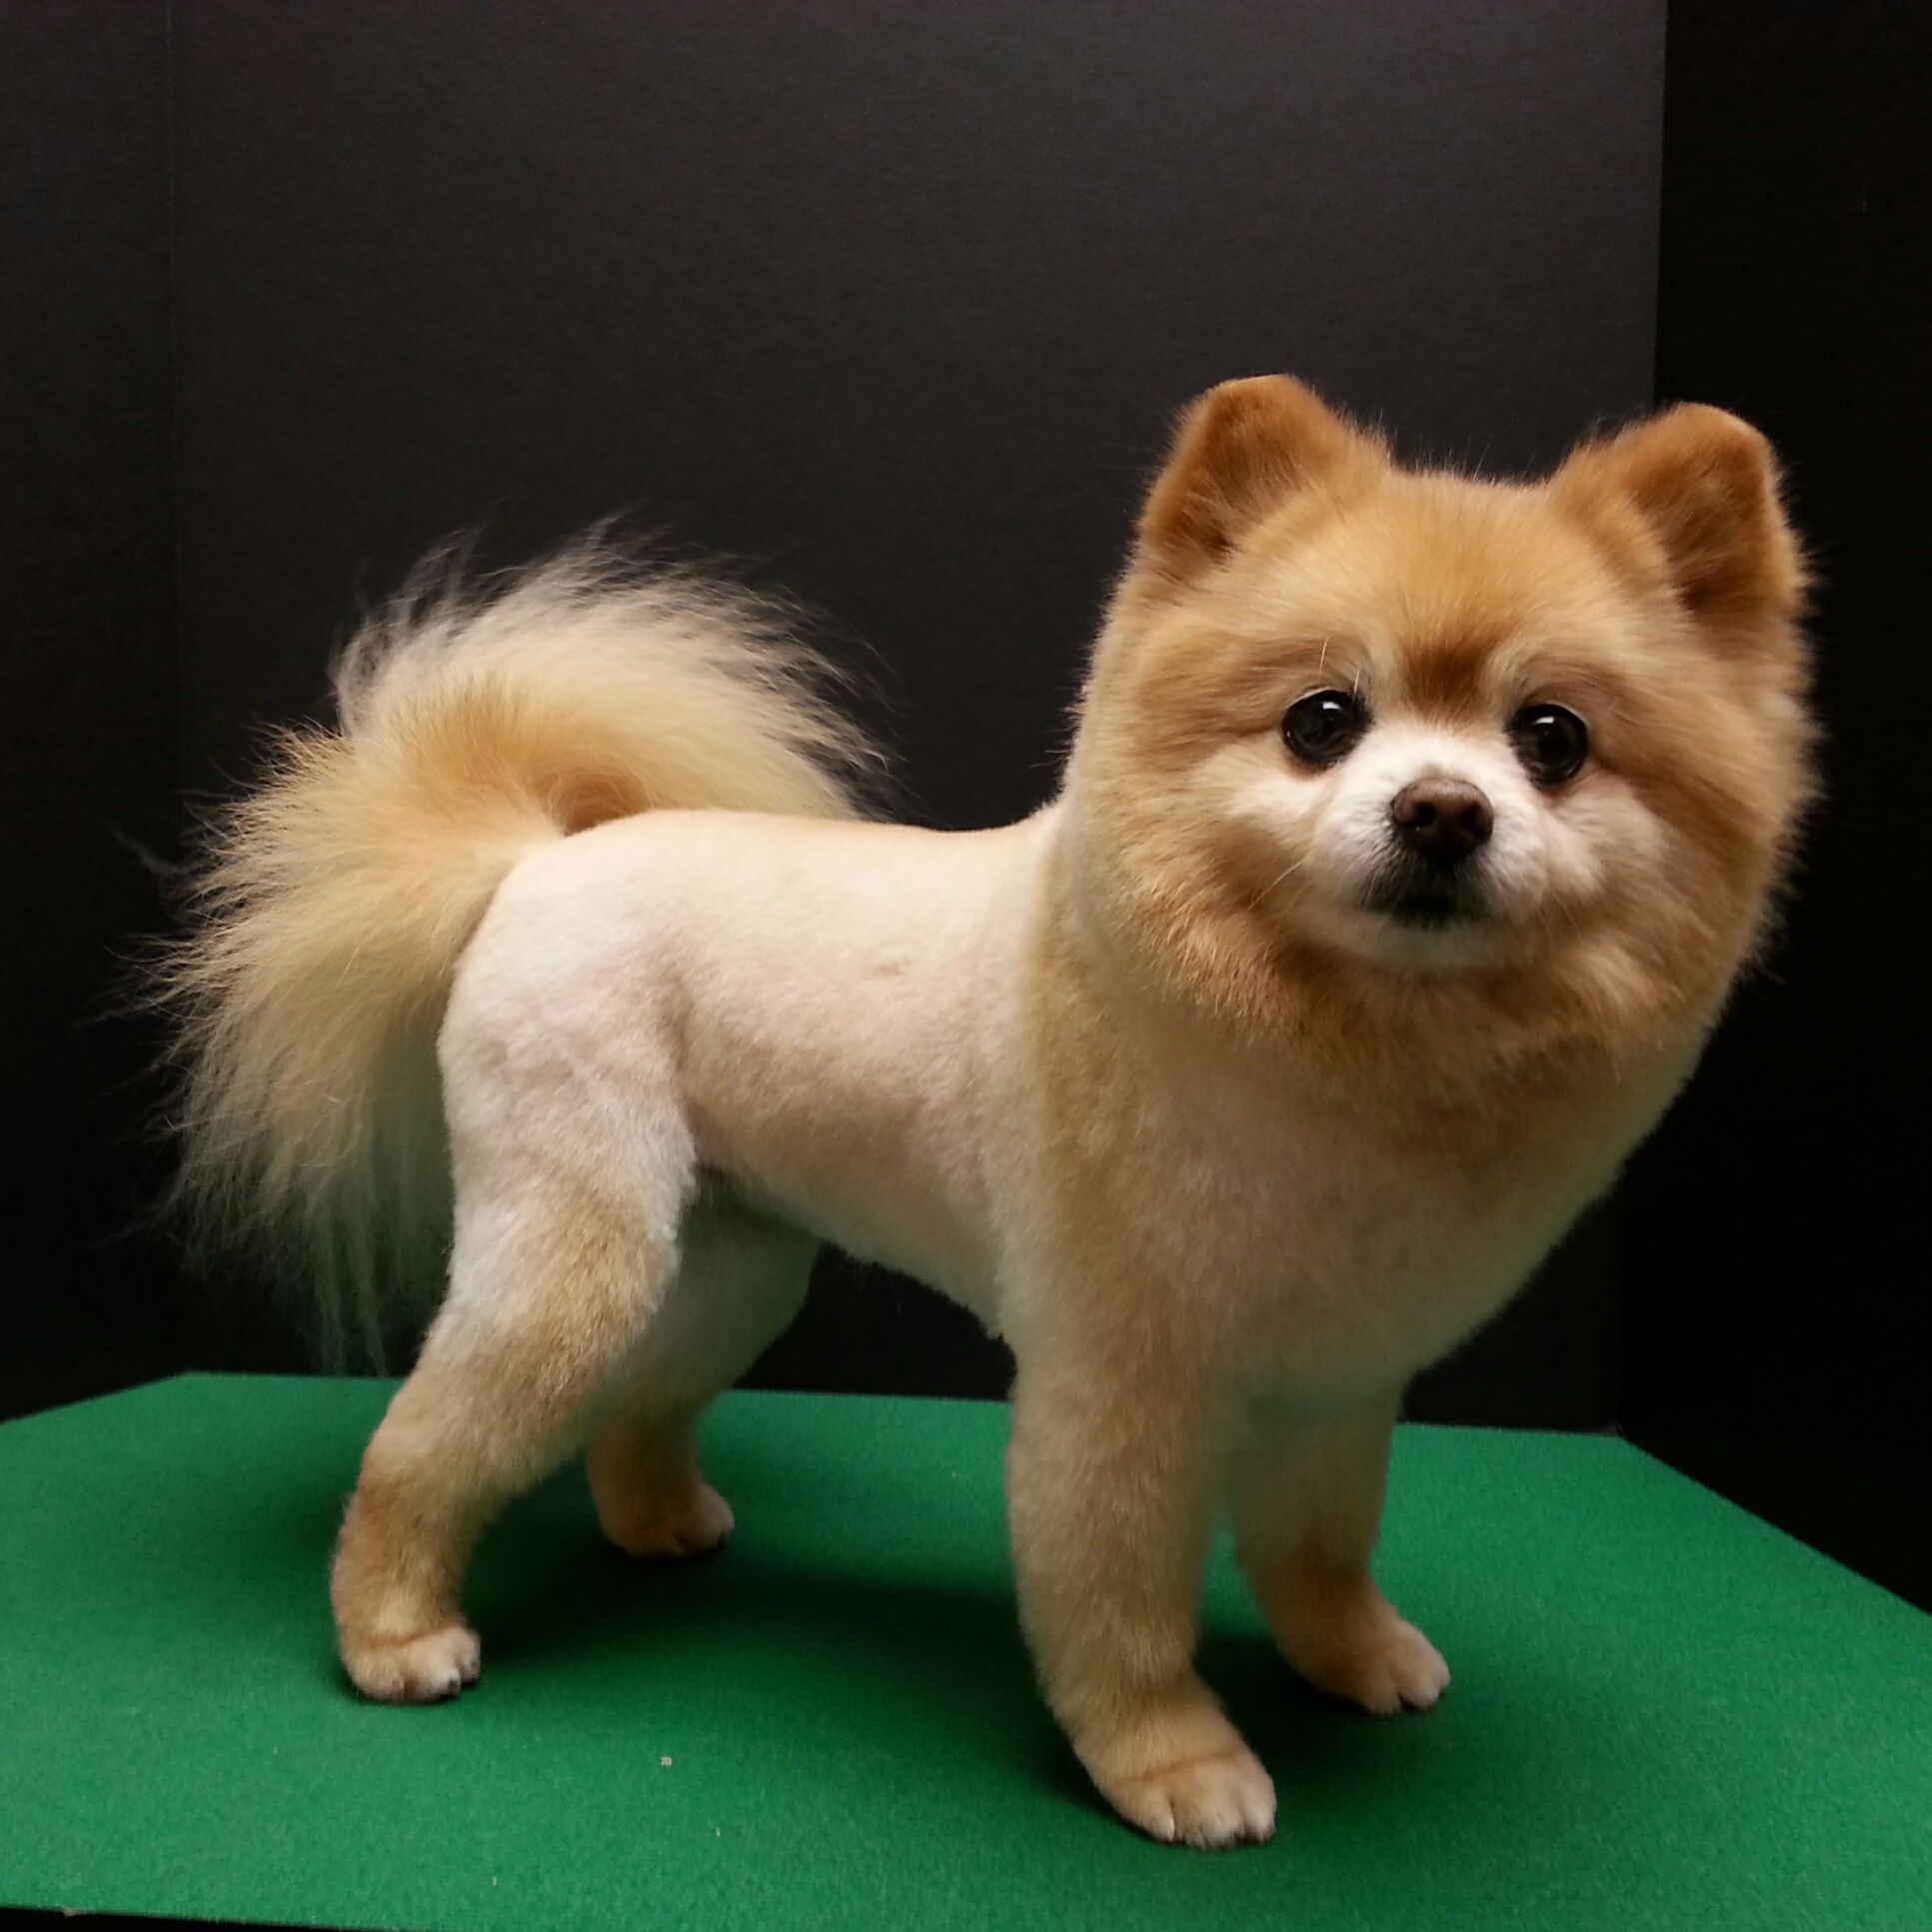 Have Your Little Pomeranian Look Like A Fierce Lion With These Haircut Ideas The Secret Life Of Pets In Theaters July